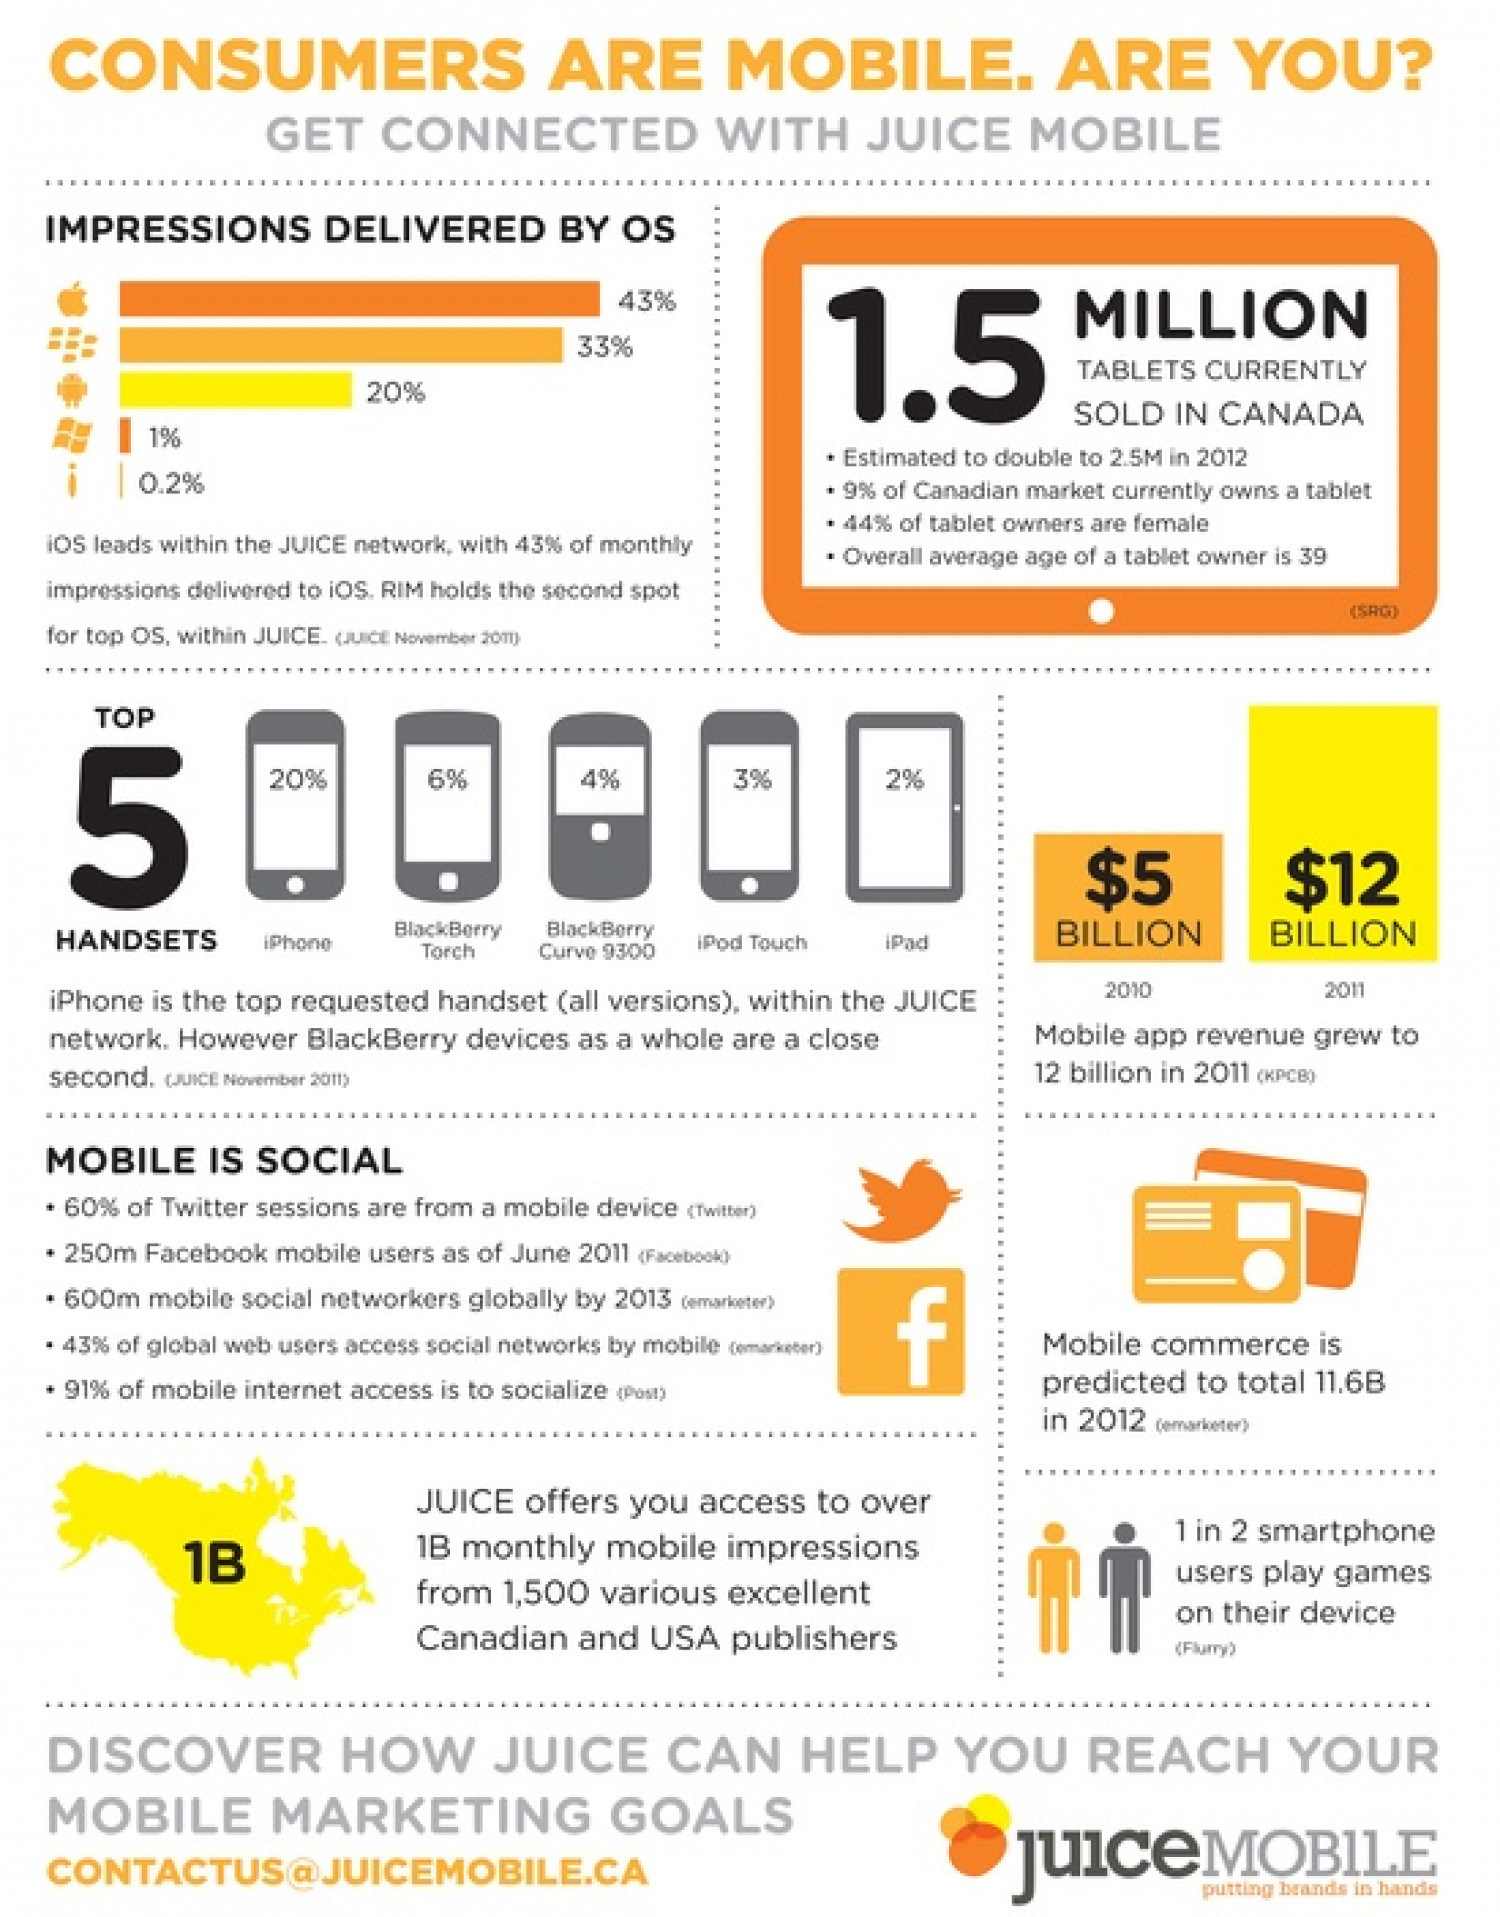 Consumers are Mobile. Are You Infographic